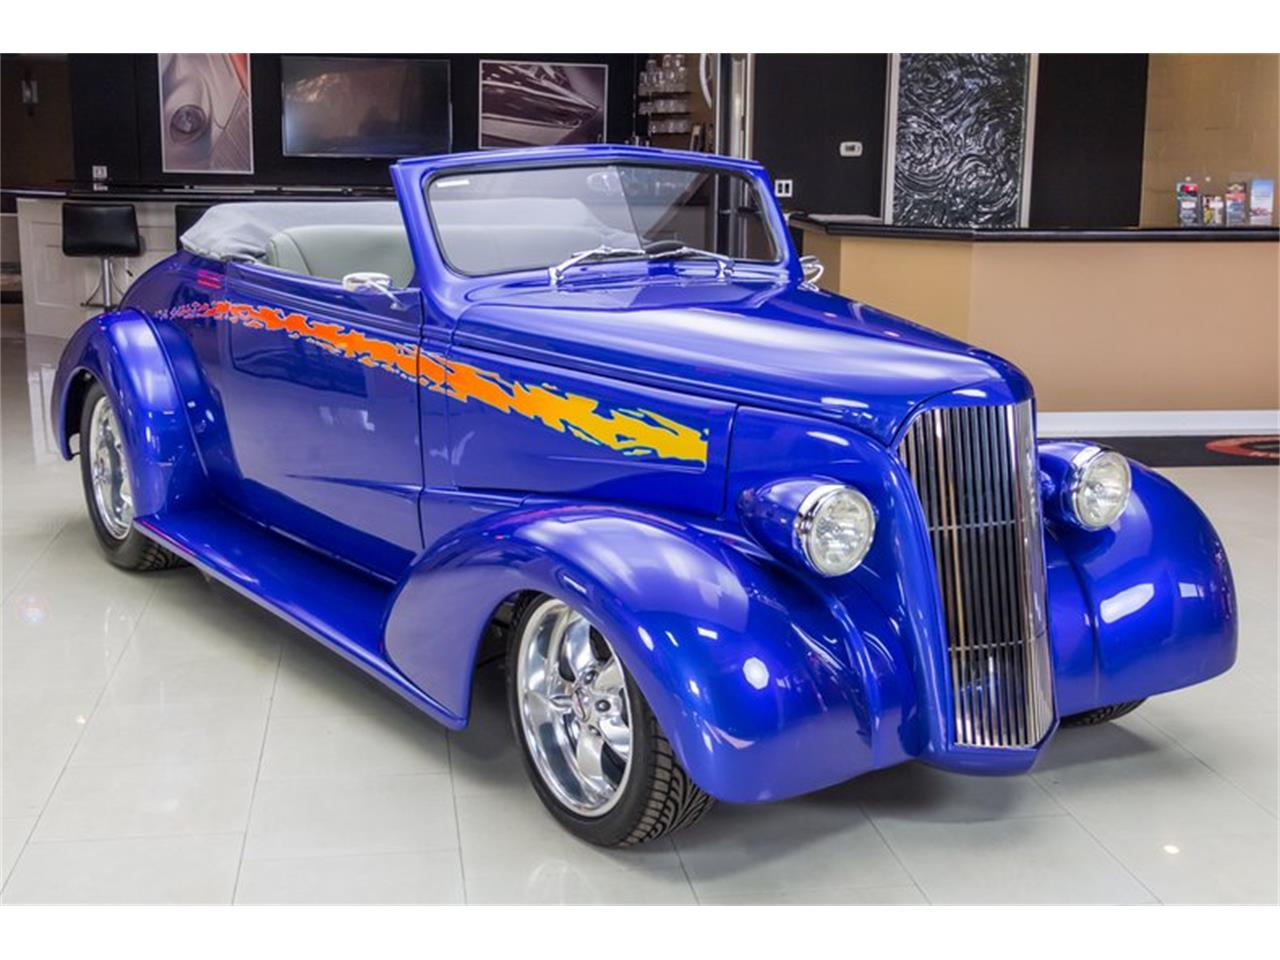 Large Picture of Classic '37 Chevrolet Antique located in Michigan - $49,900.00 Offered by Vanguard Motor Sales - N75T